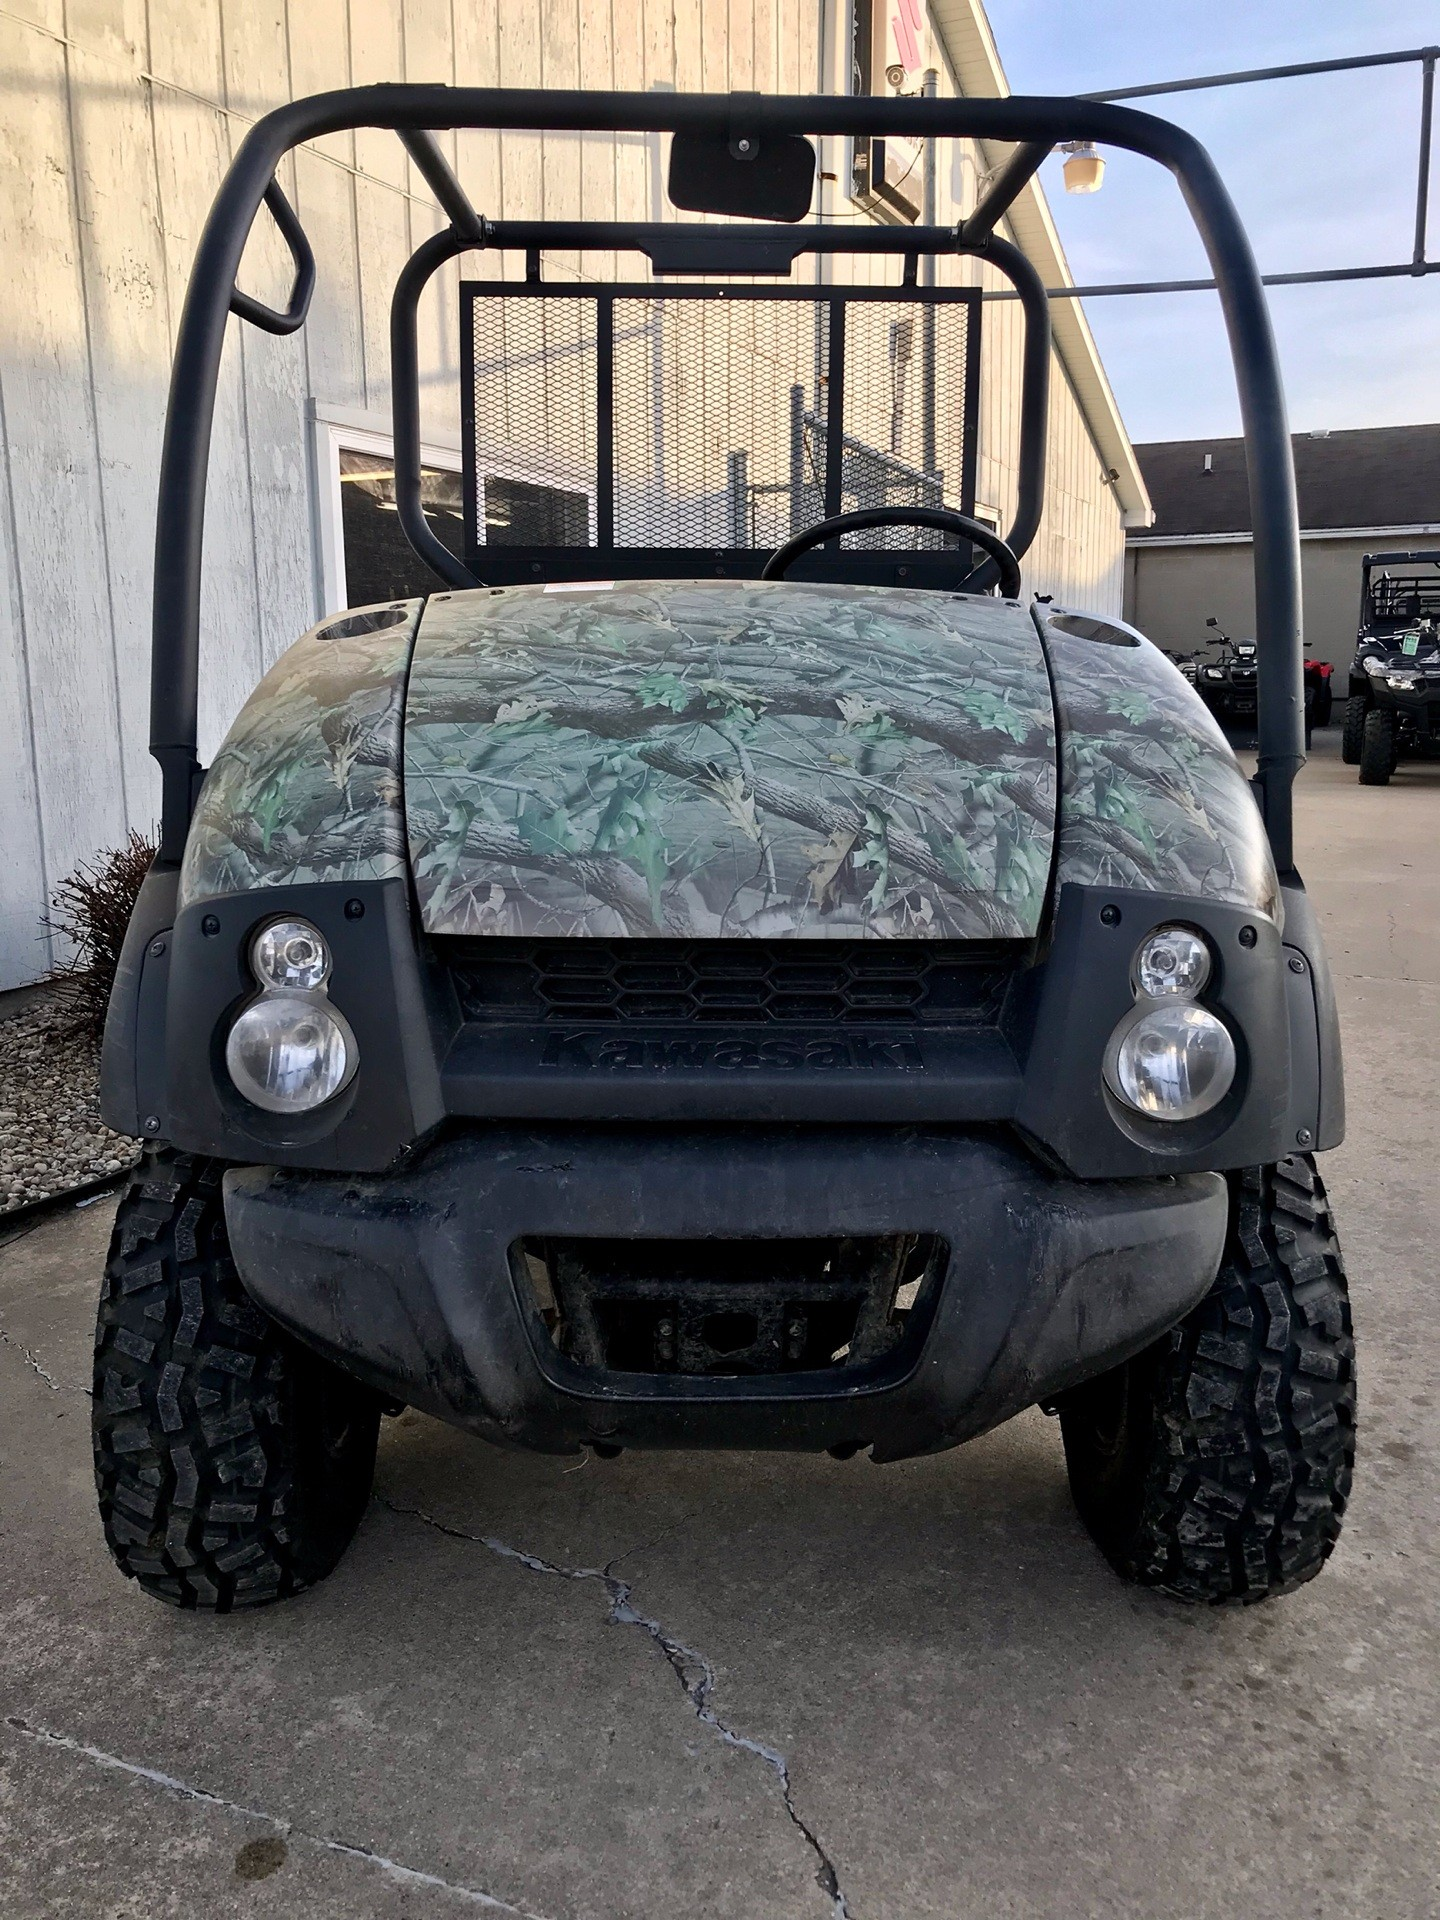 2008 Kawasaki Mule™ 610 4x4 in Watseka, Illinois